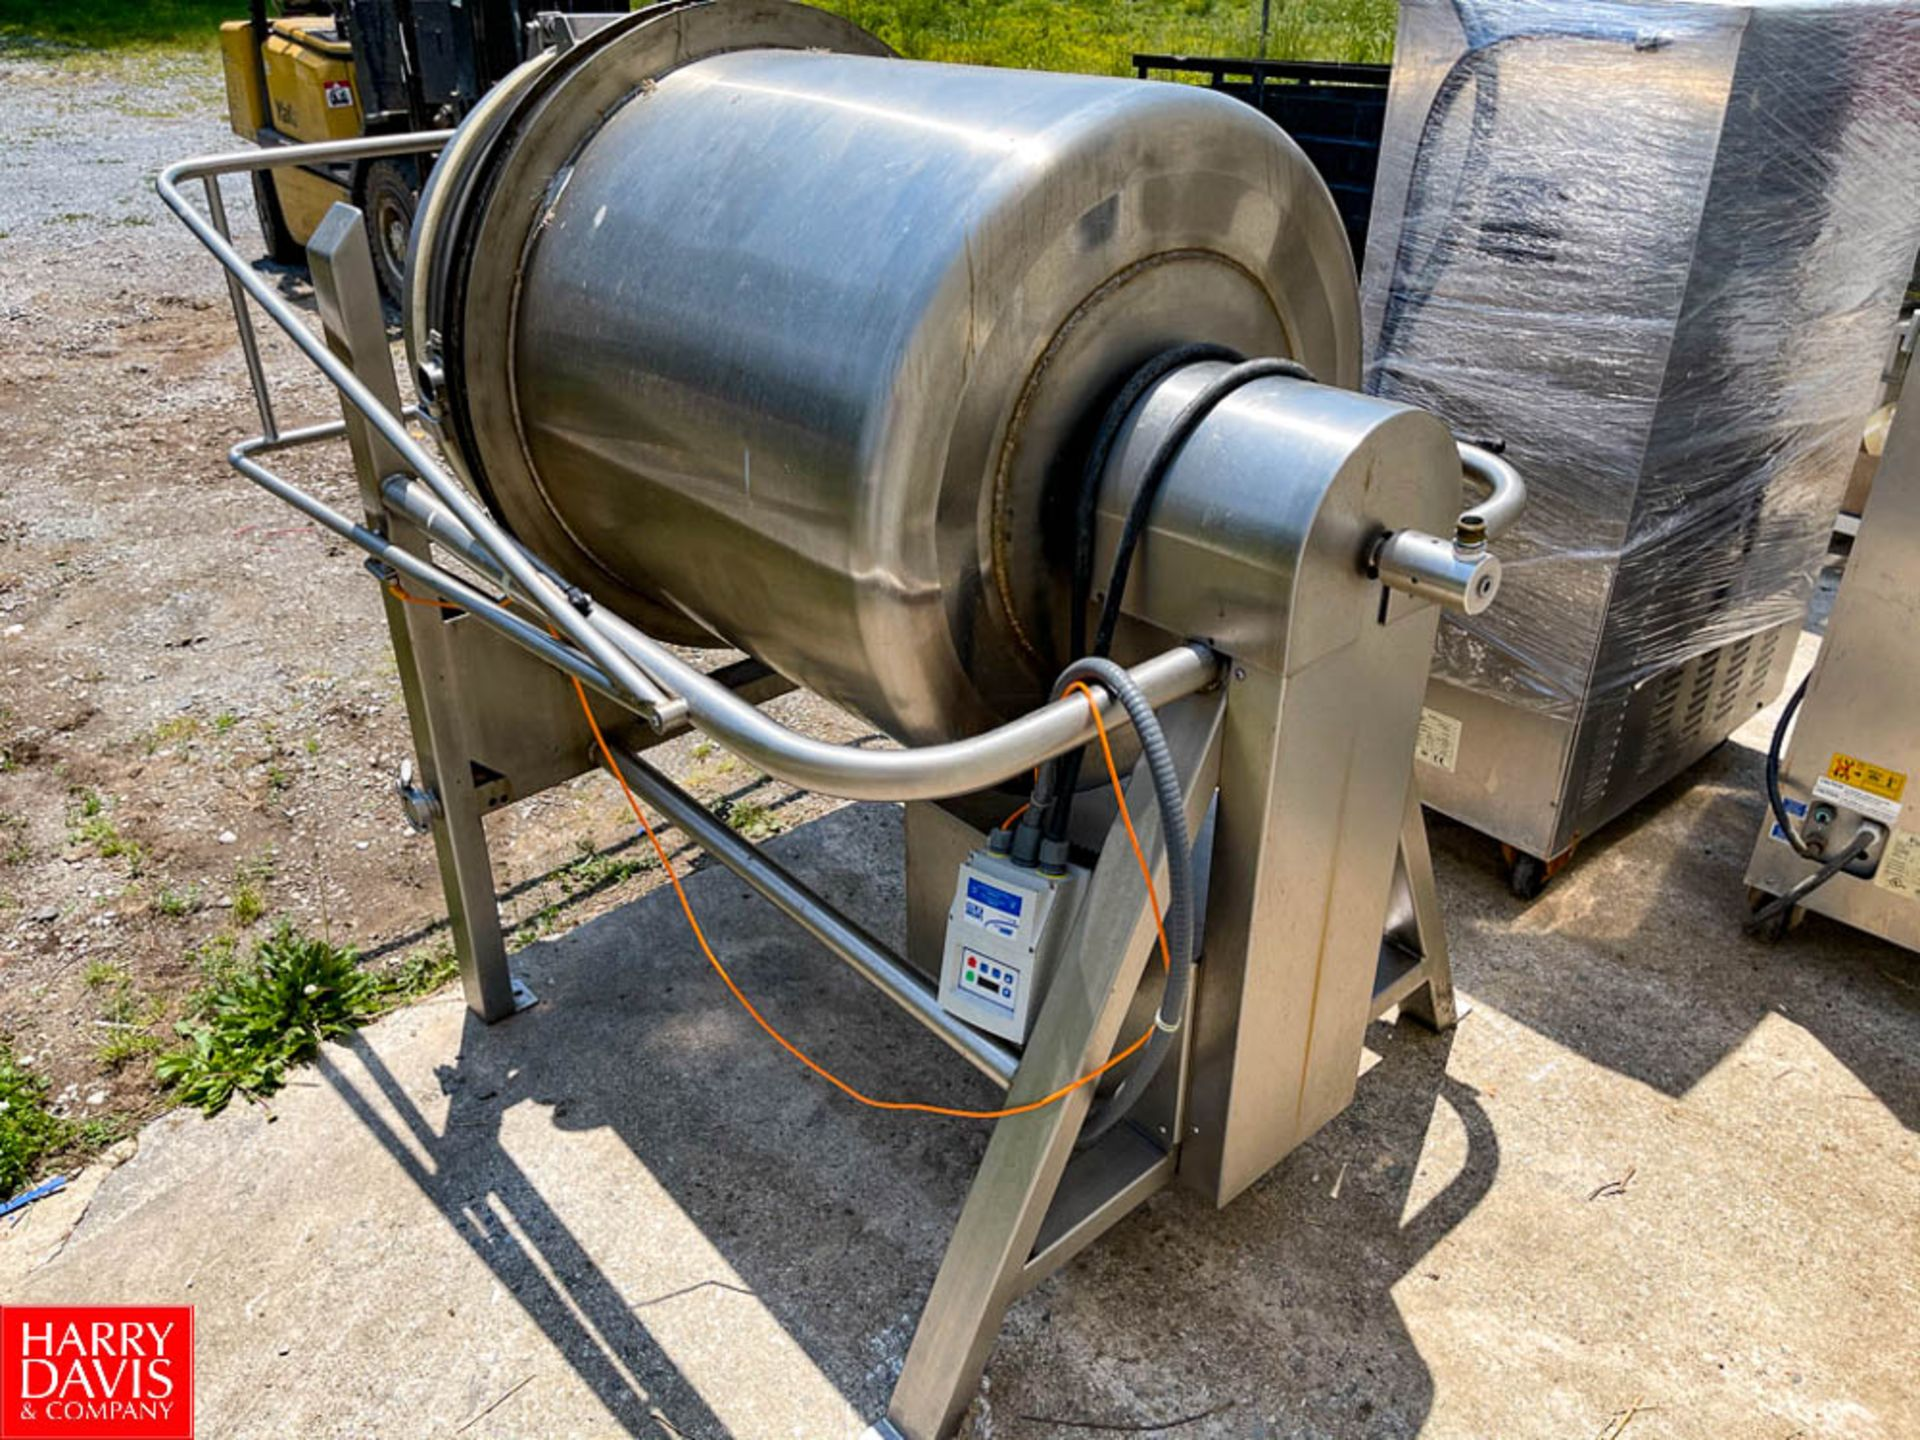 350 Pound Capacity S/S Rotary Butter Churn with 2 HP Motor and Lenze AC Tech Variable Frequency - Image 4 of 4